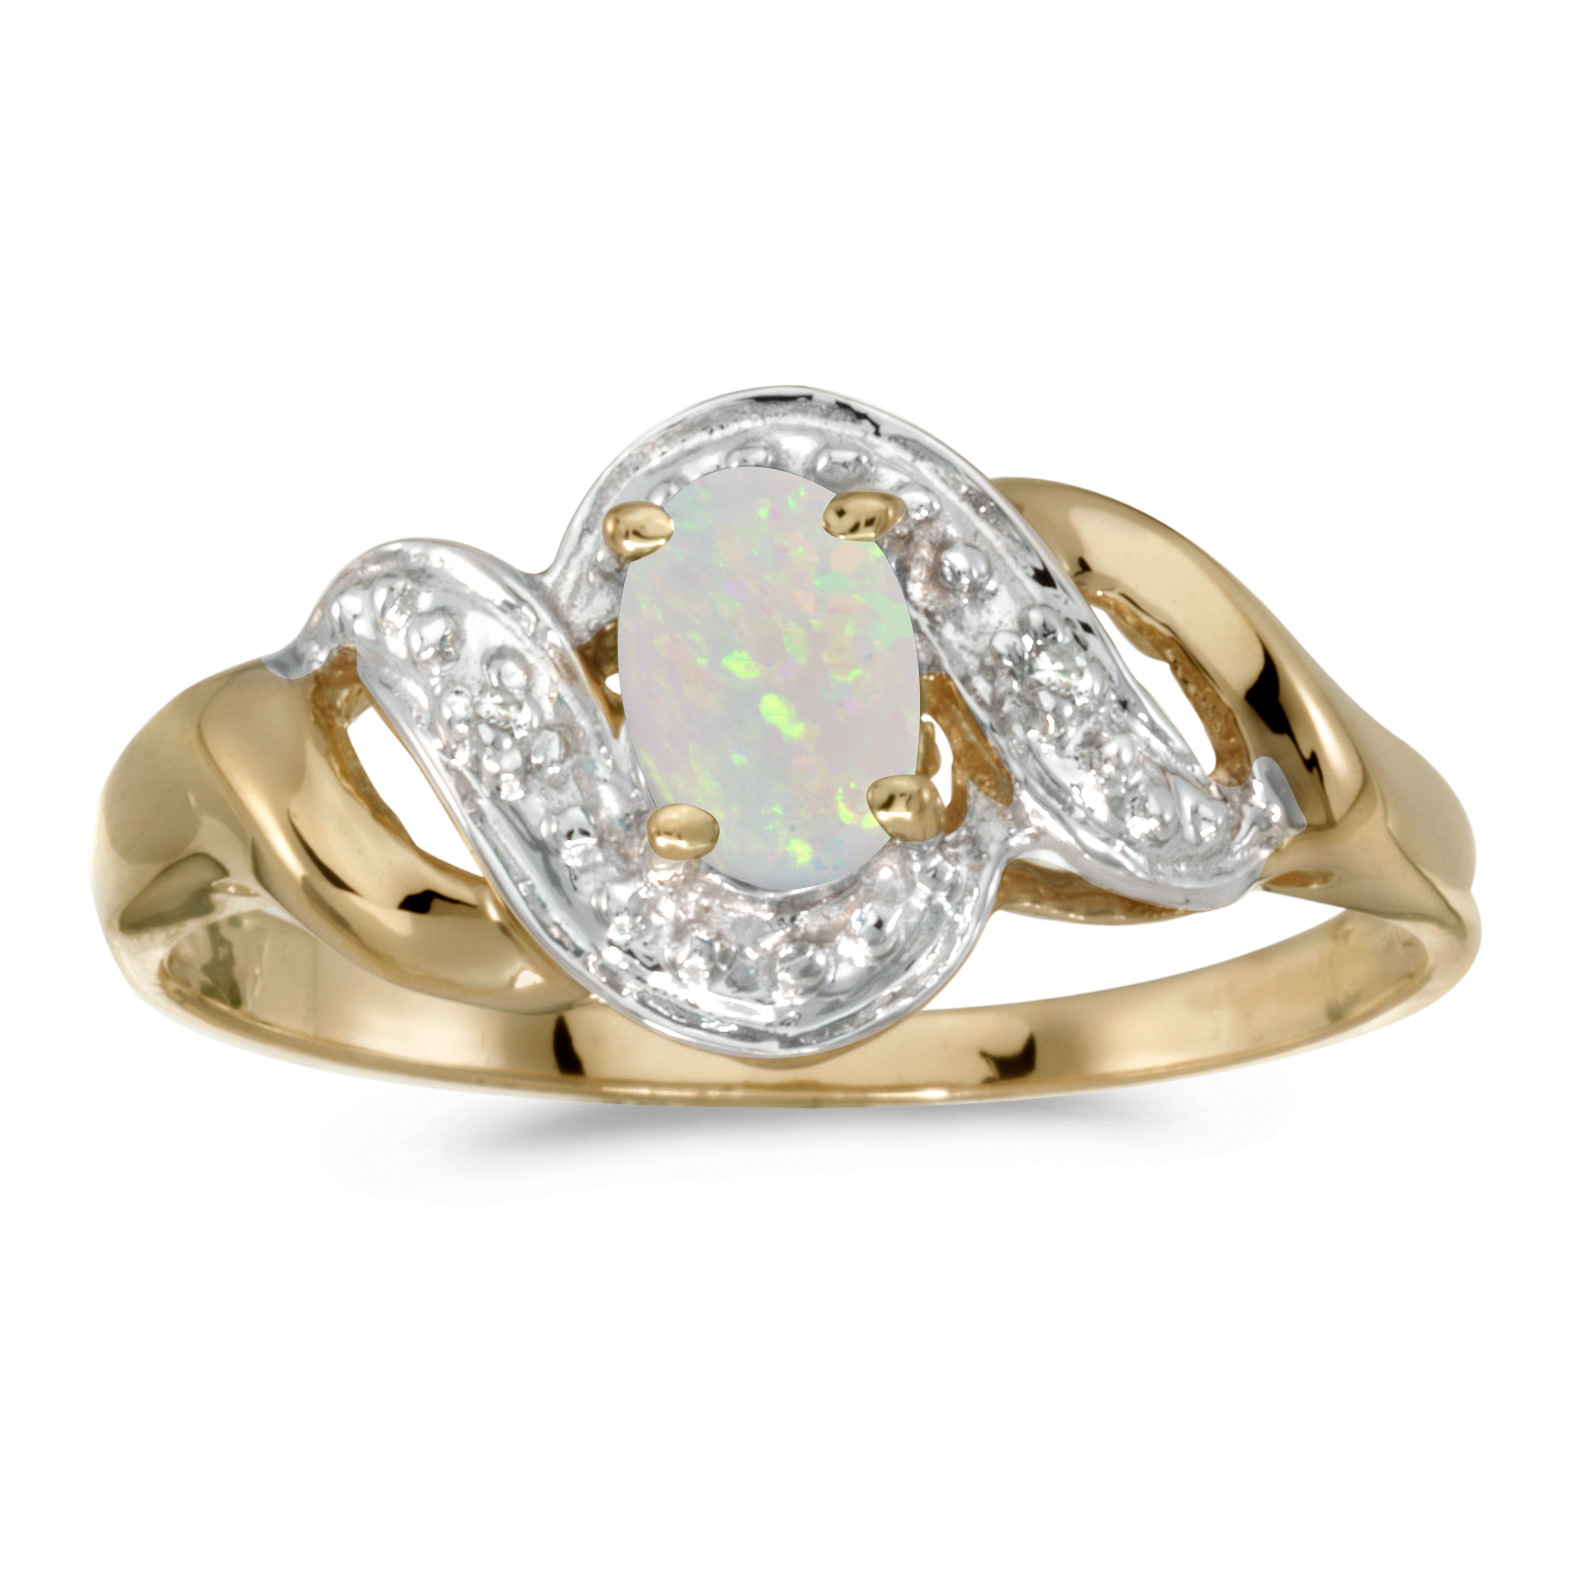 10k Yellow Gold Oval Opal And Diamond Swirl Ring by